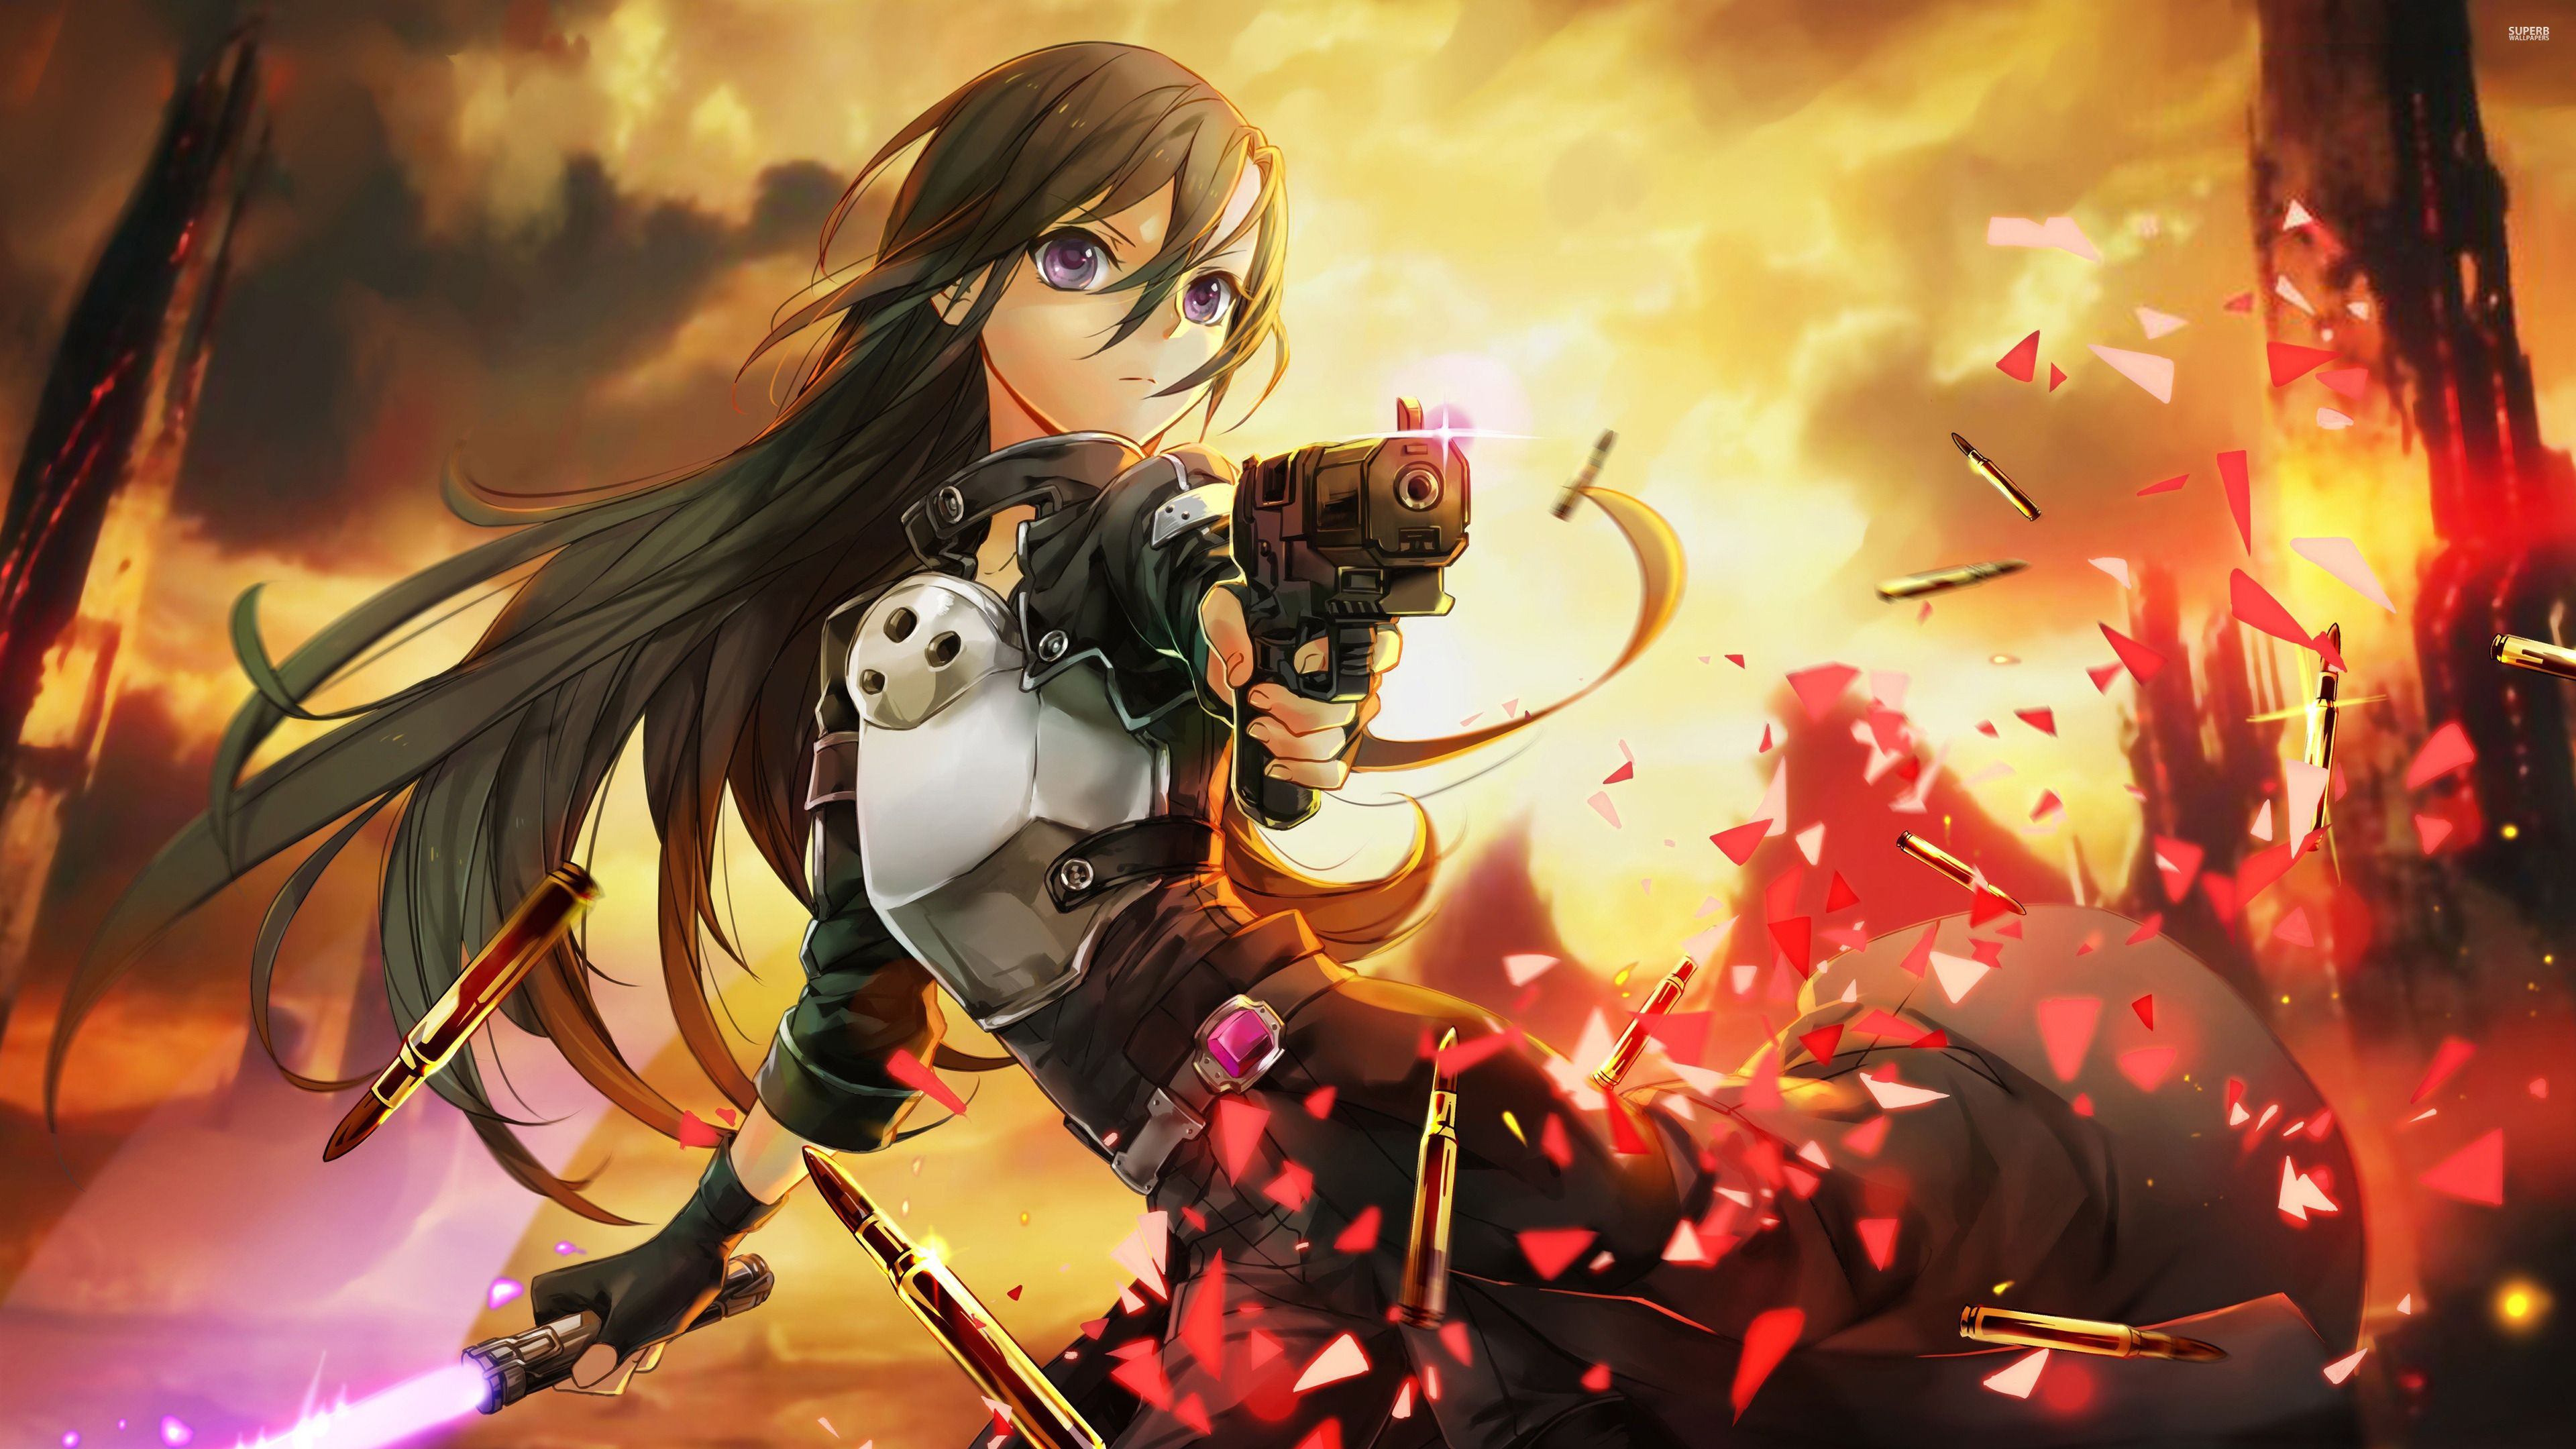 High Resolution Sword Art Online SAO Asuna Wallpaper Ultra